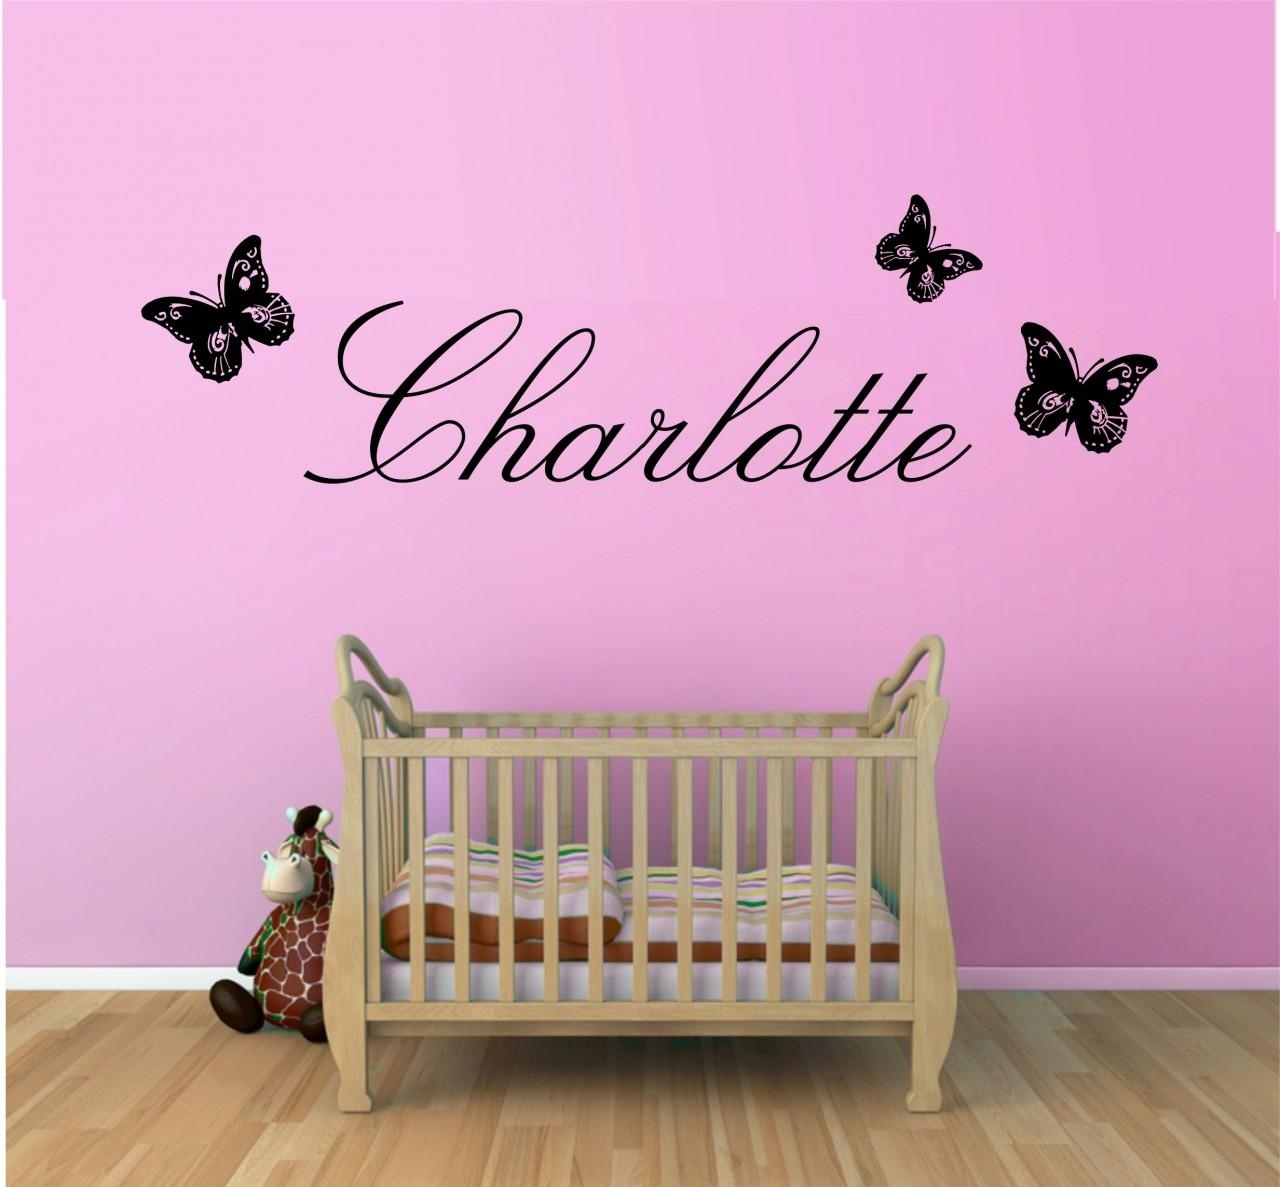 Lighten Up The Nursery With Baby Nursery Wall Decals | Amazing Throughout Butterflies Wall Art Stickers (View 17 of 20)